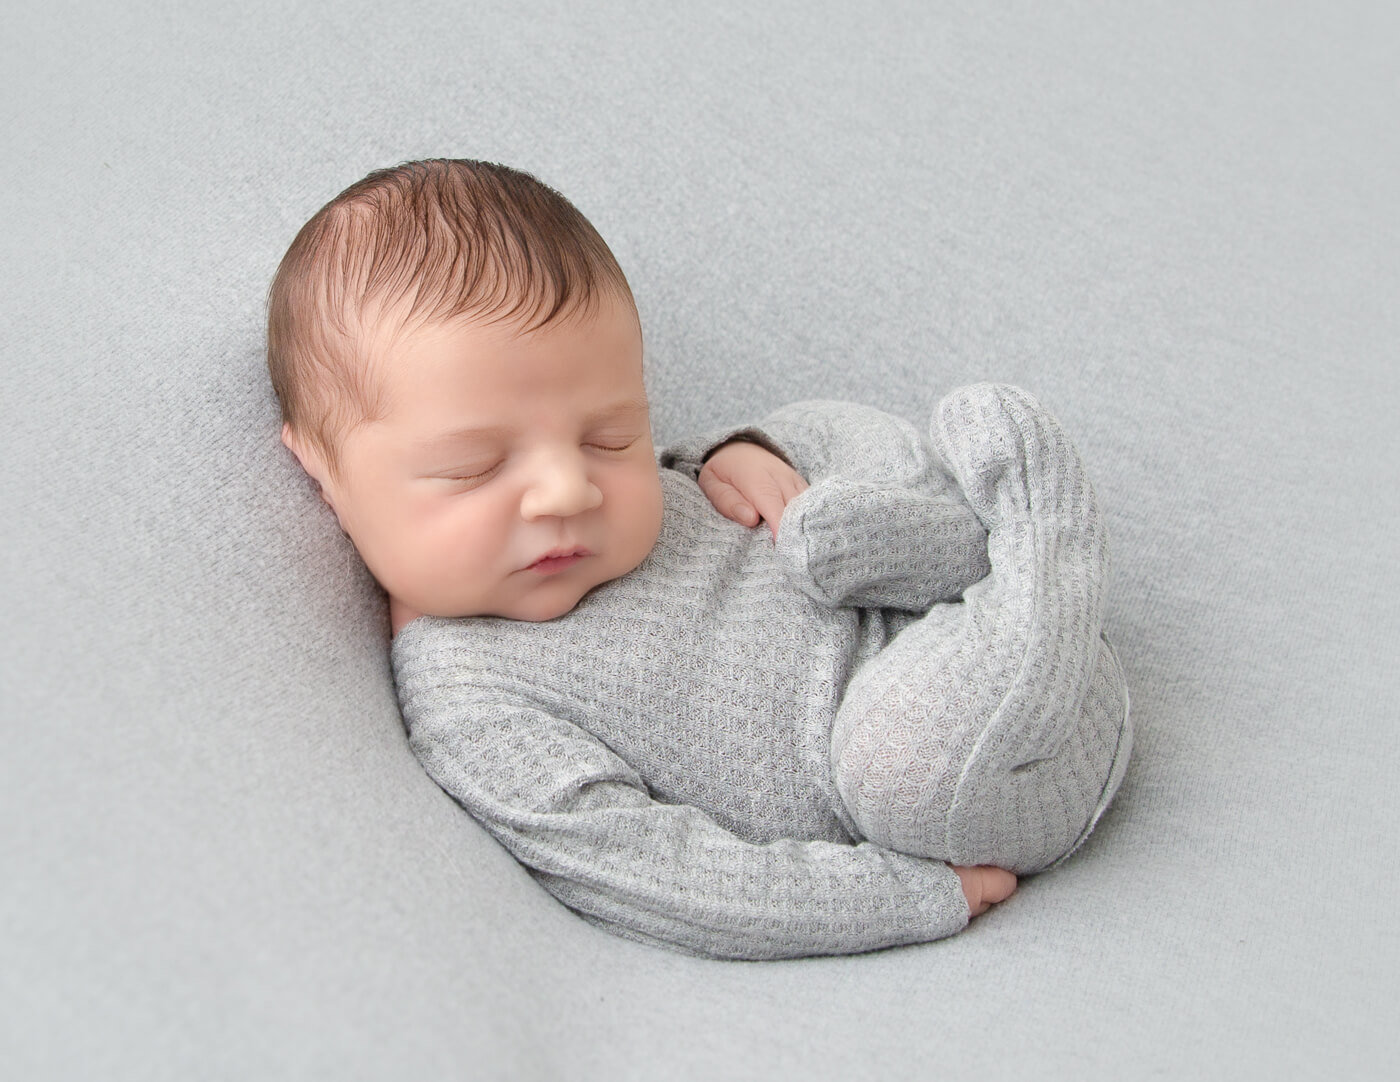 Newborn baby boy posed in our Rochester, NY studio.